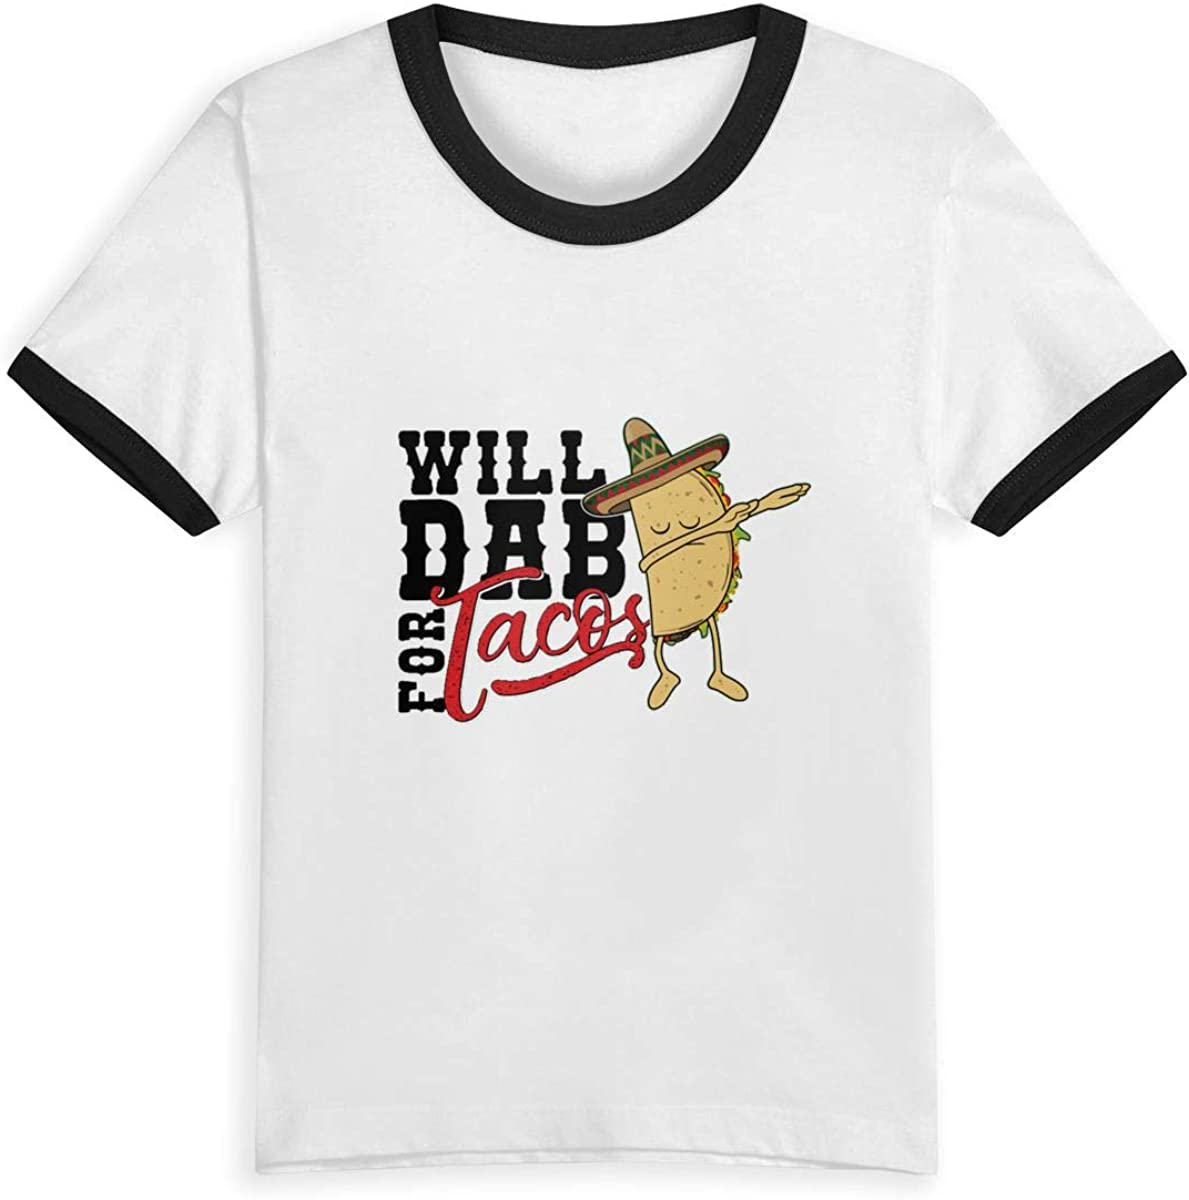 AMMAaaa Will Dab for Tacos Kids T-Shirt Childrens Short Sleeve Shirts Printed Boys Girls